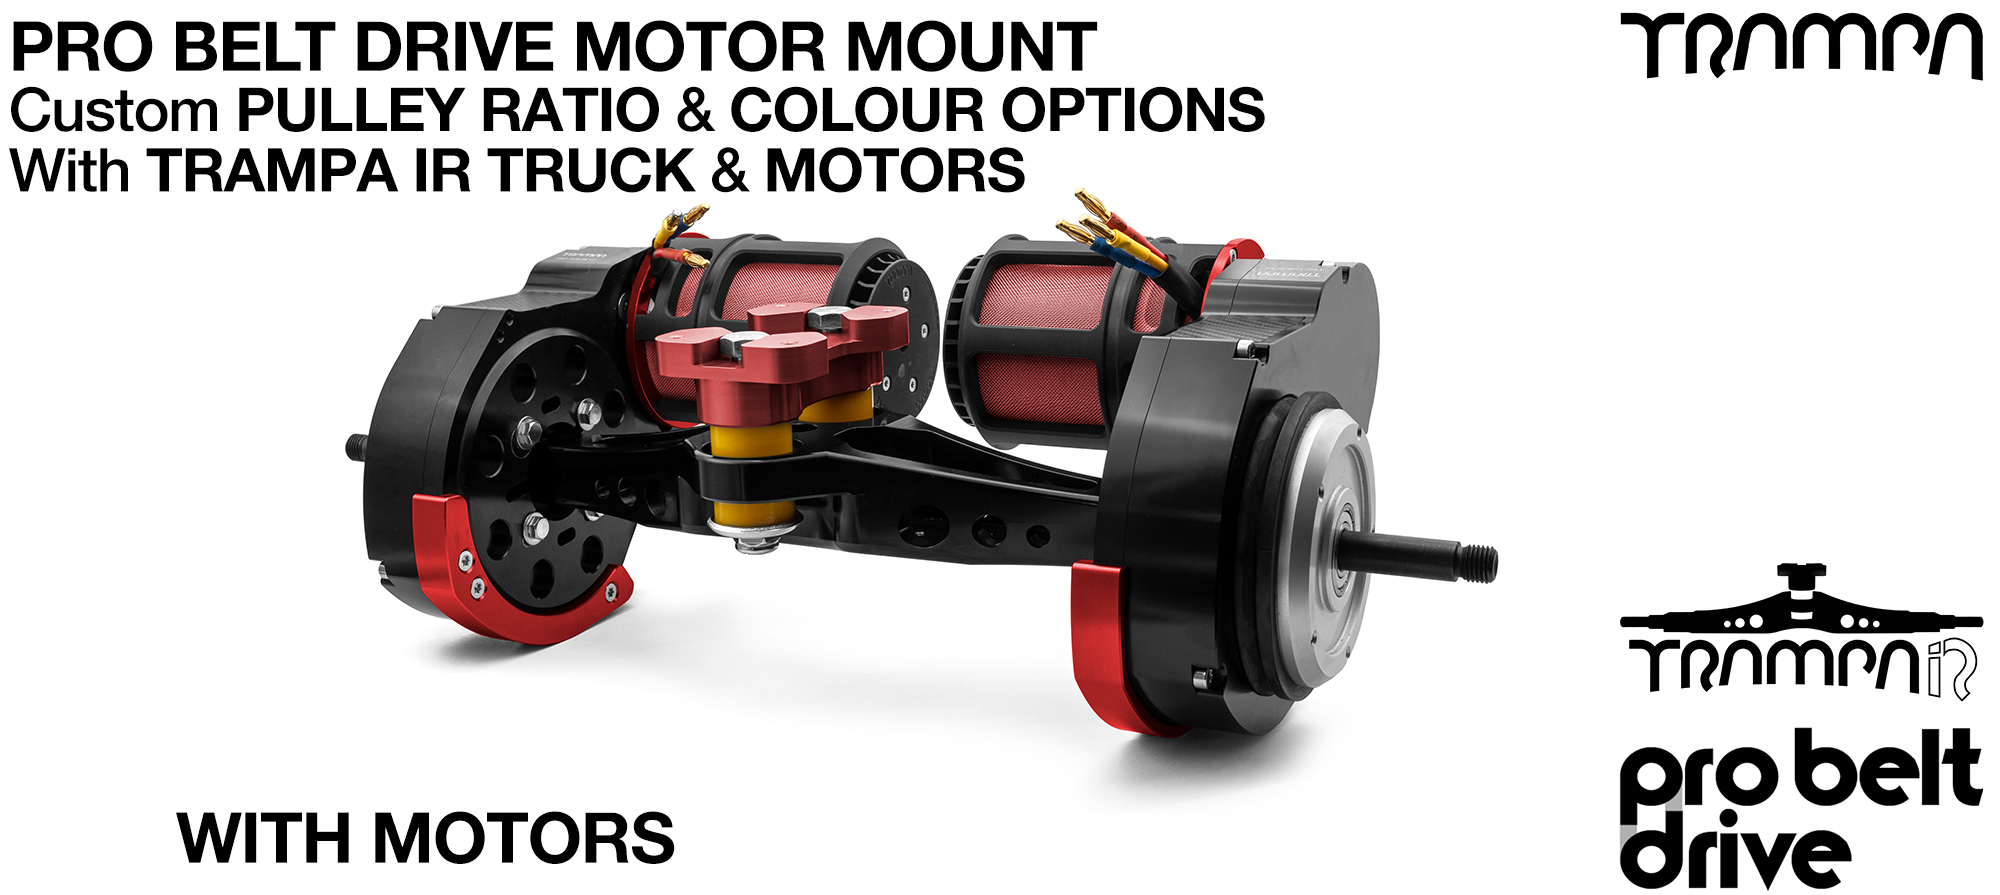 TRAMPA's 16mm PRO Belt Drive TWIN Motor Mountainboard WITH Motors Mounted on a Precision INFINITY Truck